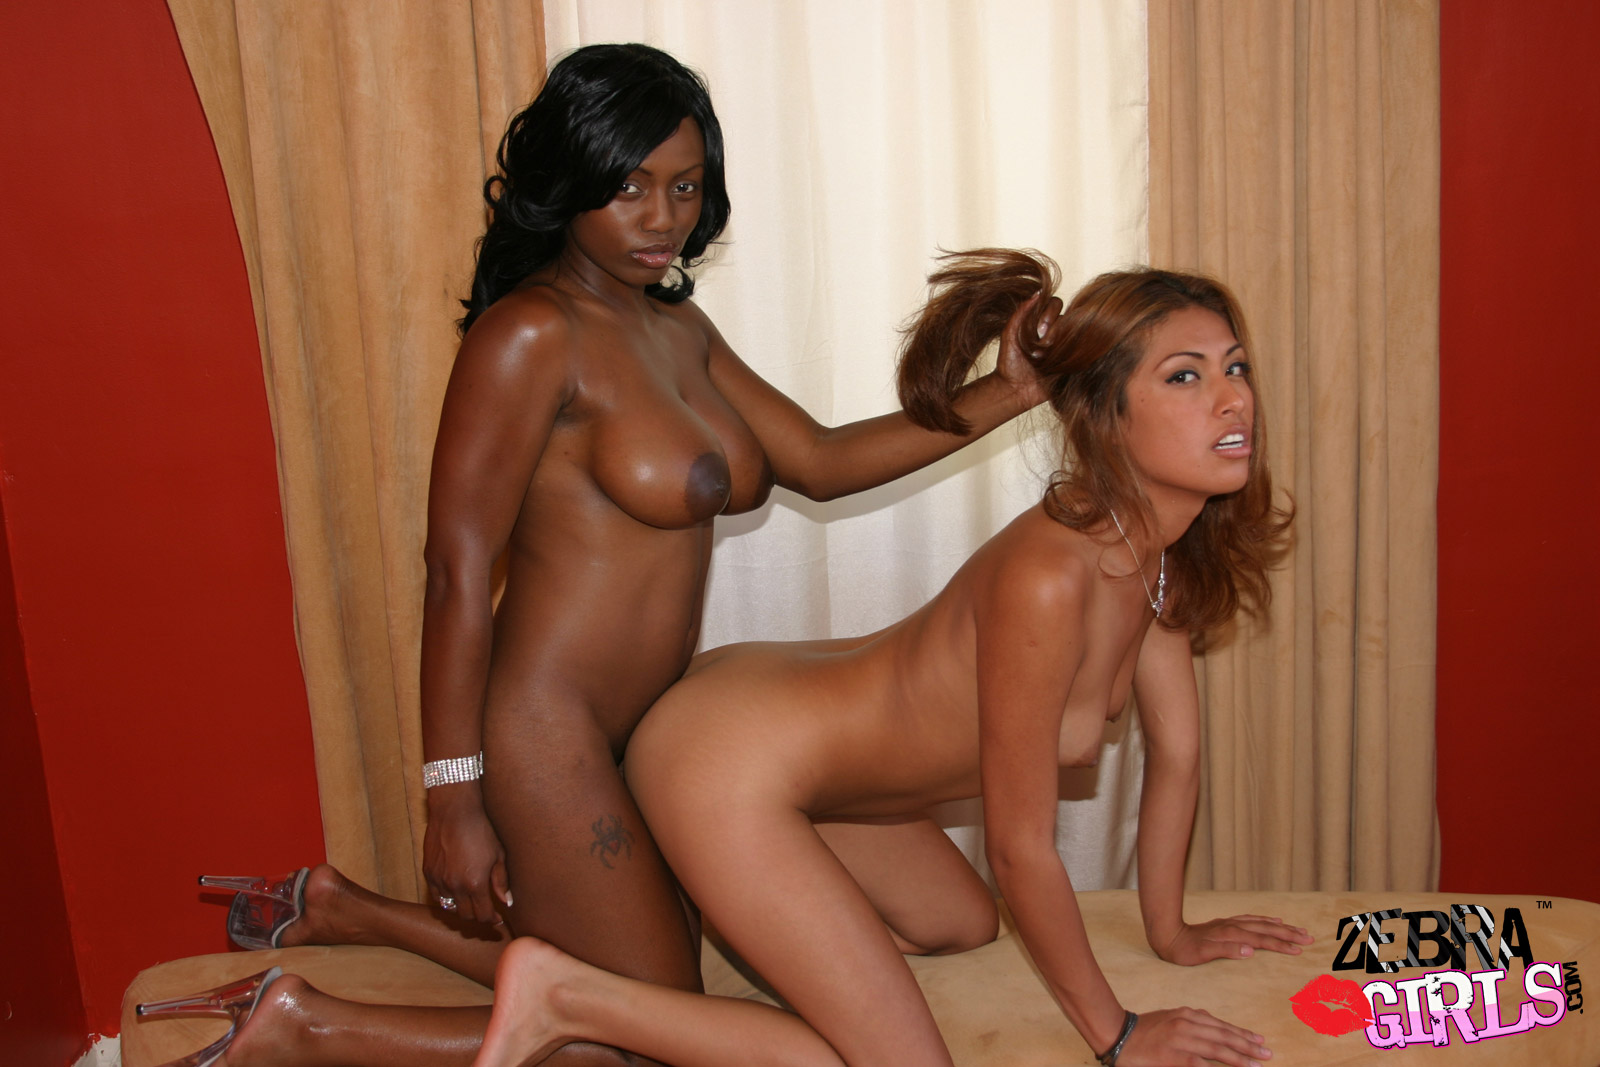 Two girls dominate xxx ebony gives blowjob 3